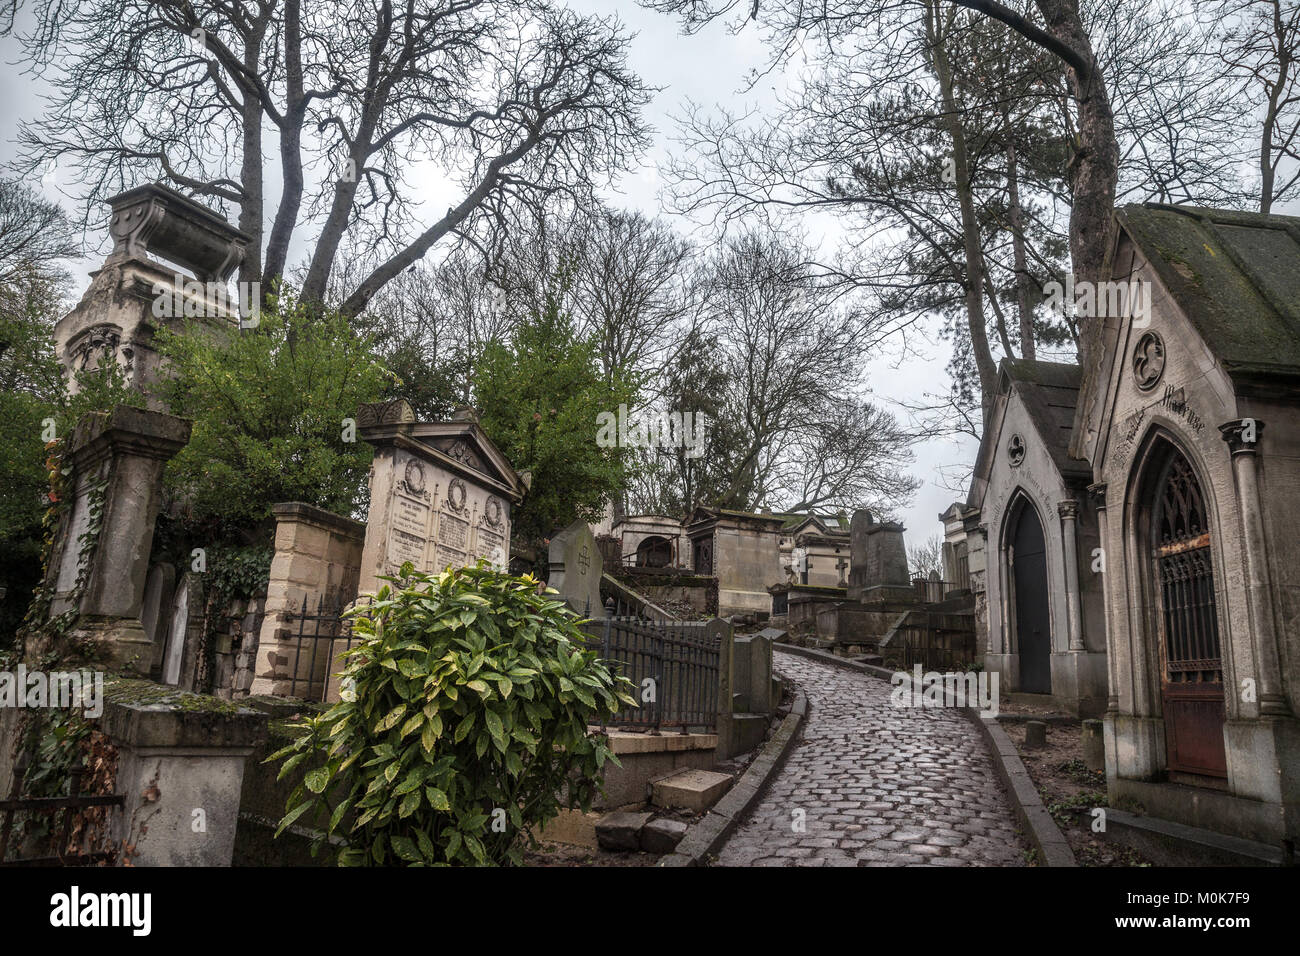 PARIS, FRANCE - DECEMBER 22, 2017: Graves from the 19th century in Pere Lachaise Cemetery in Paris, France, during - Stock Image